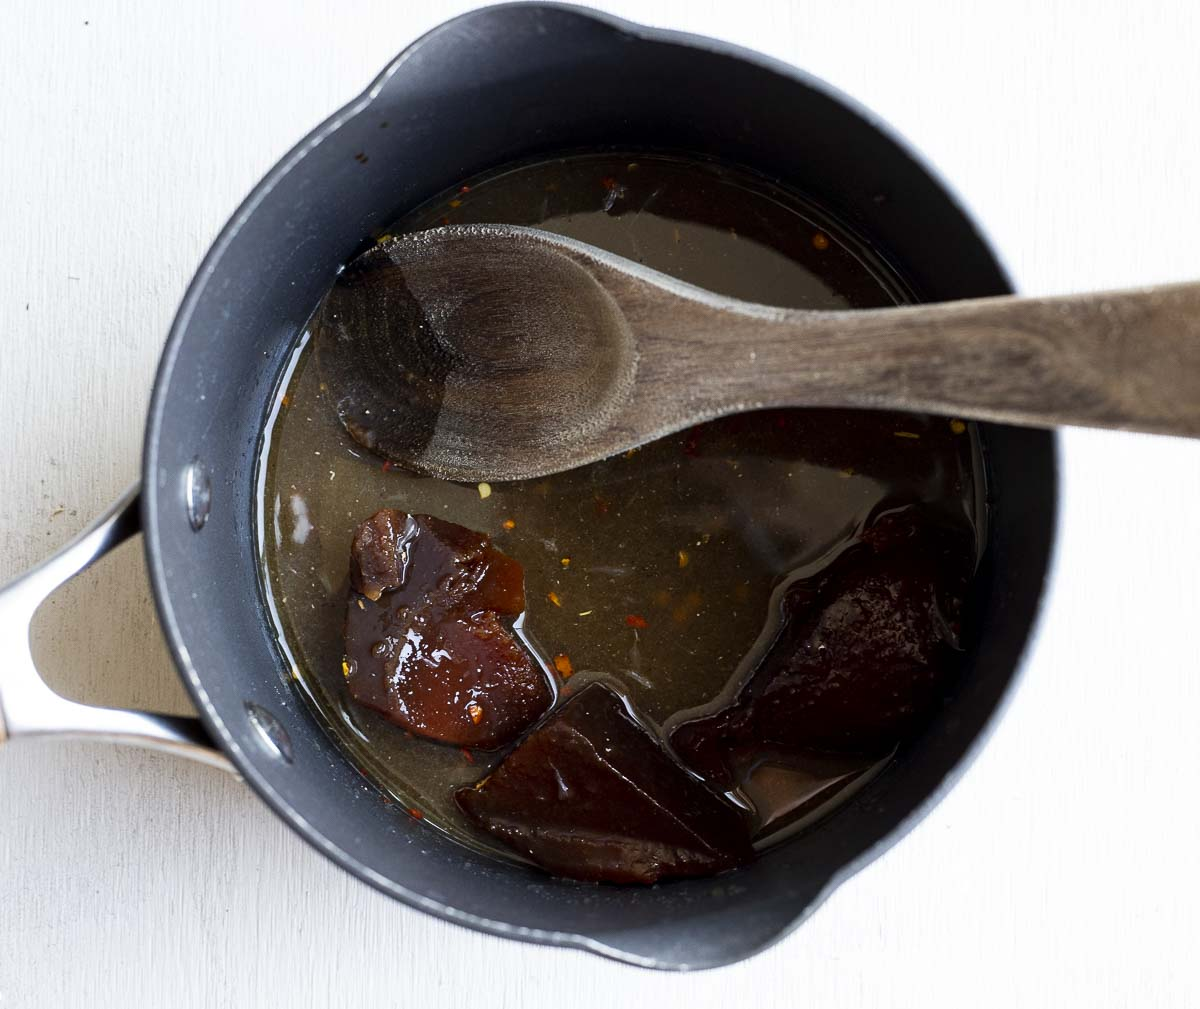 guava paste and sauce in a saucepan